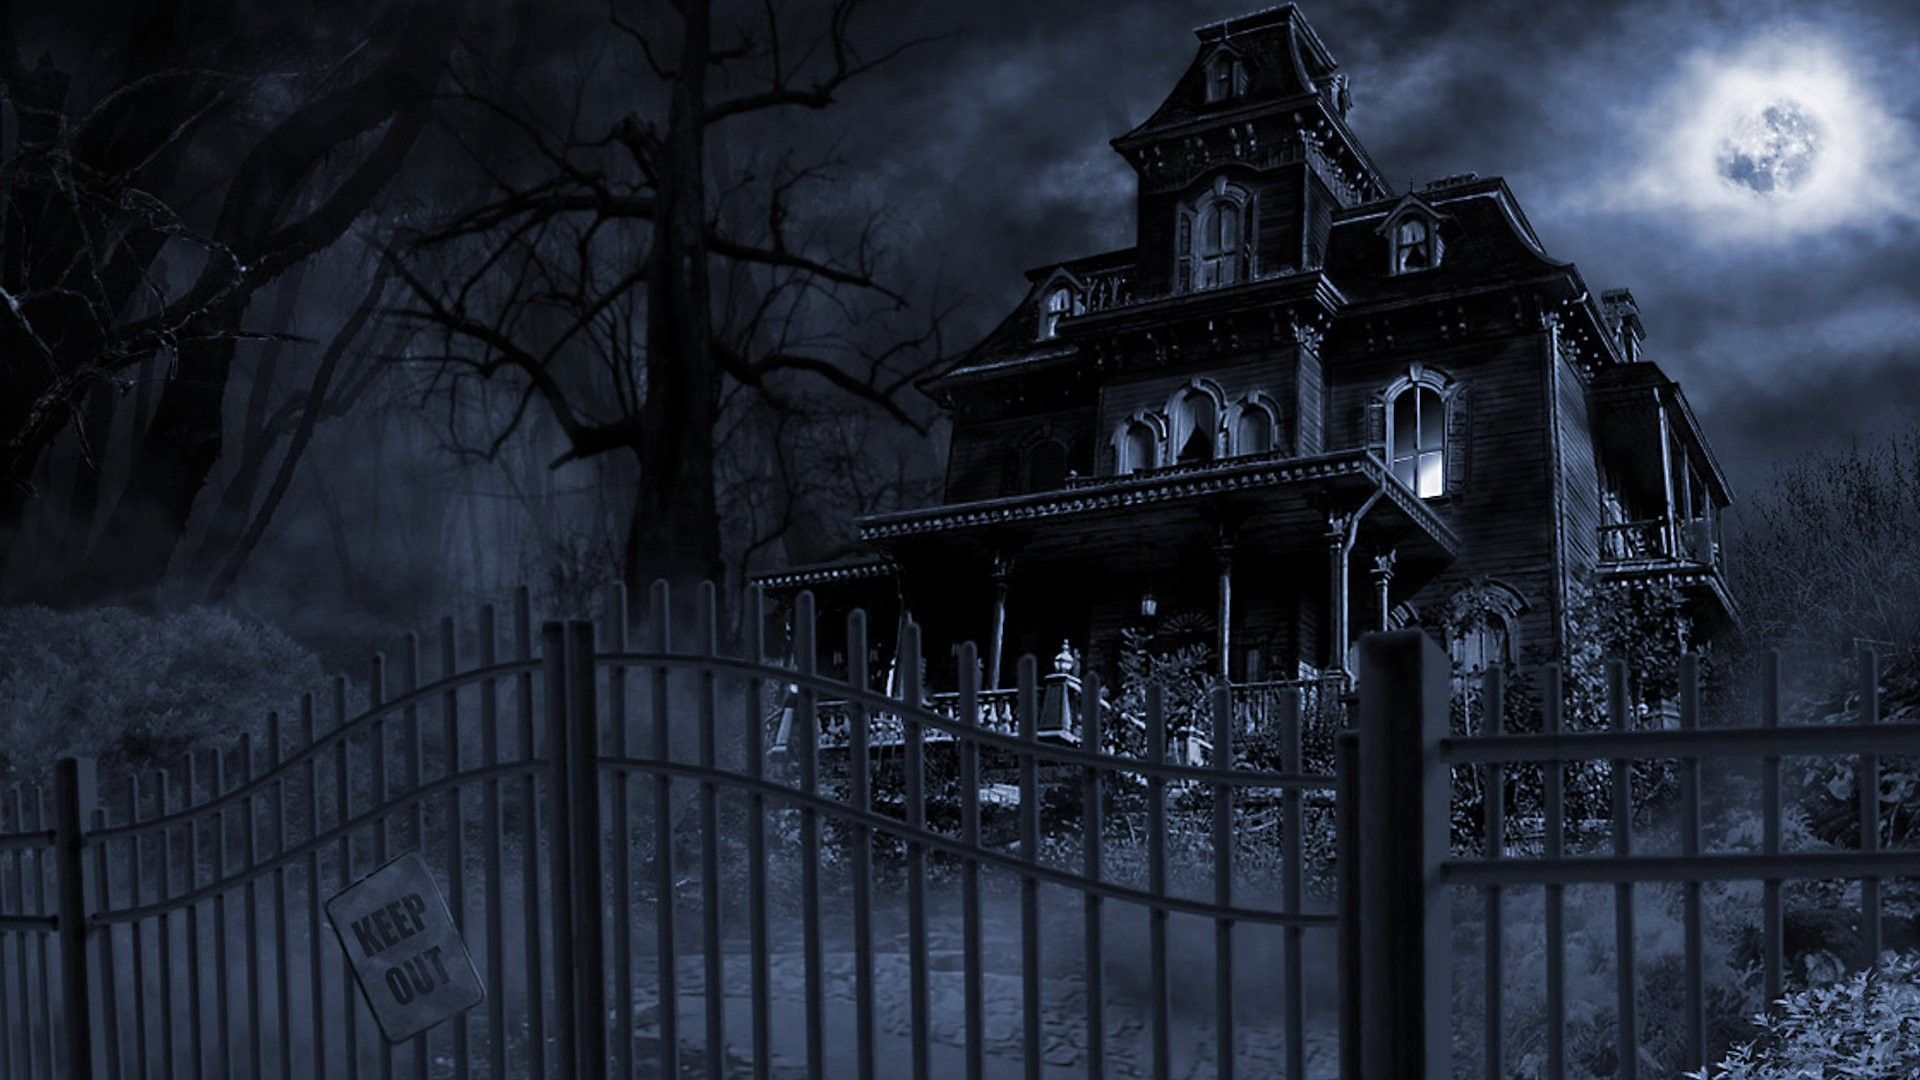 Spooky Wallpapers Dark Spooky Wallpaper Background 1920 X 1080 Id 209828 Wallpaper Real Haunted Houses Scary Houses Haunted Mansion Wallpaper